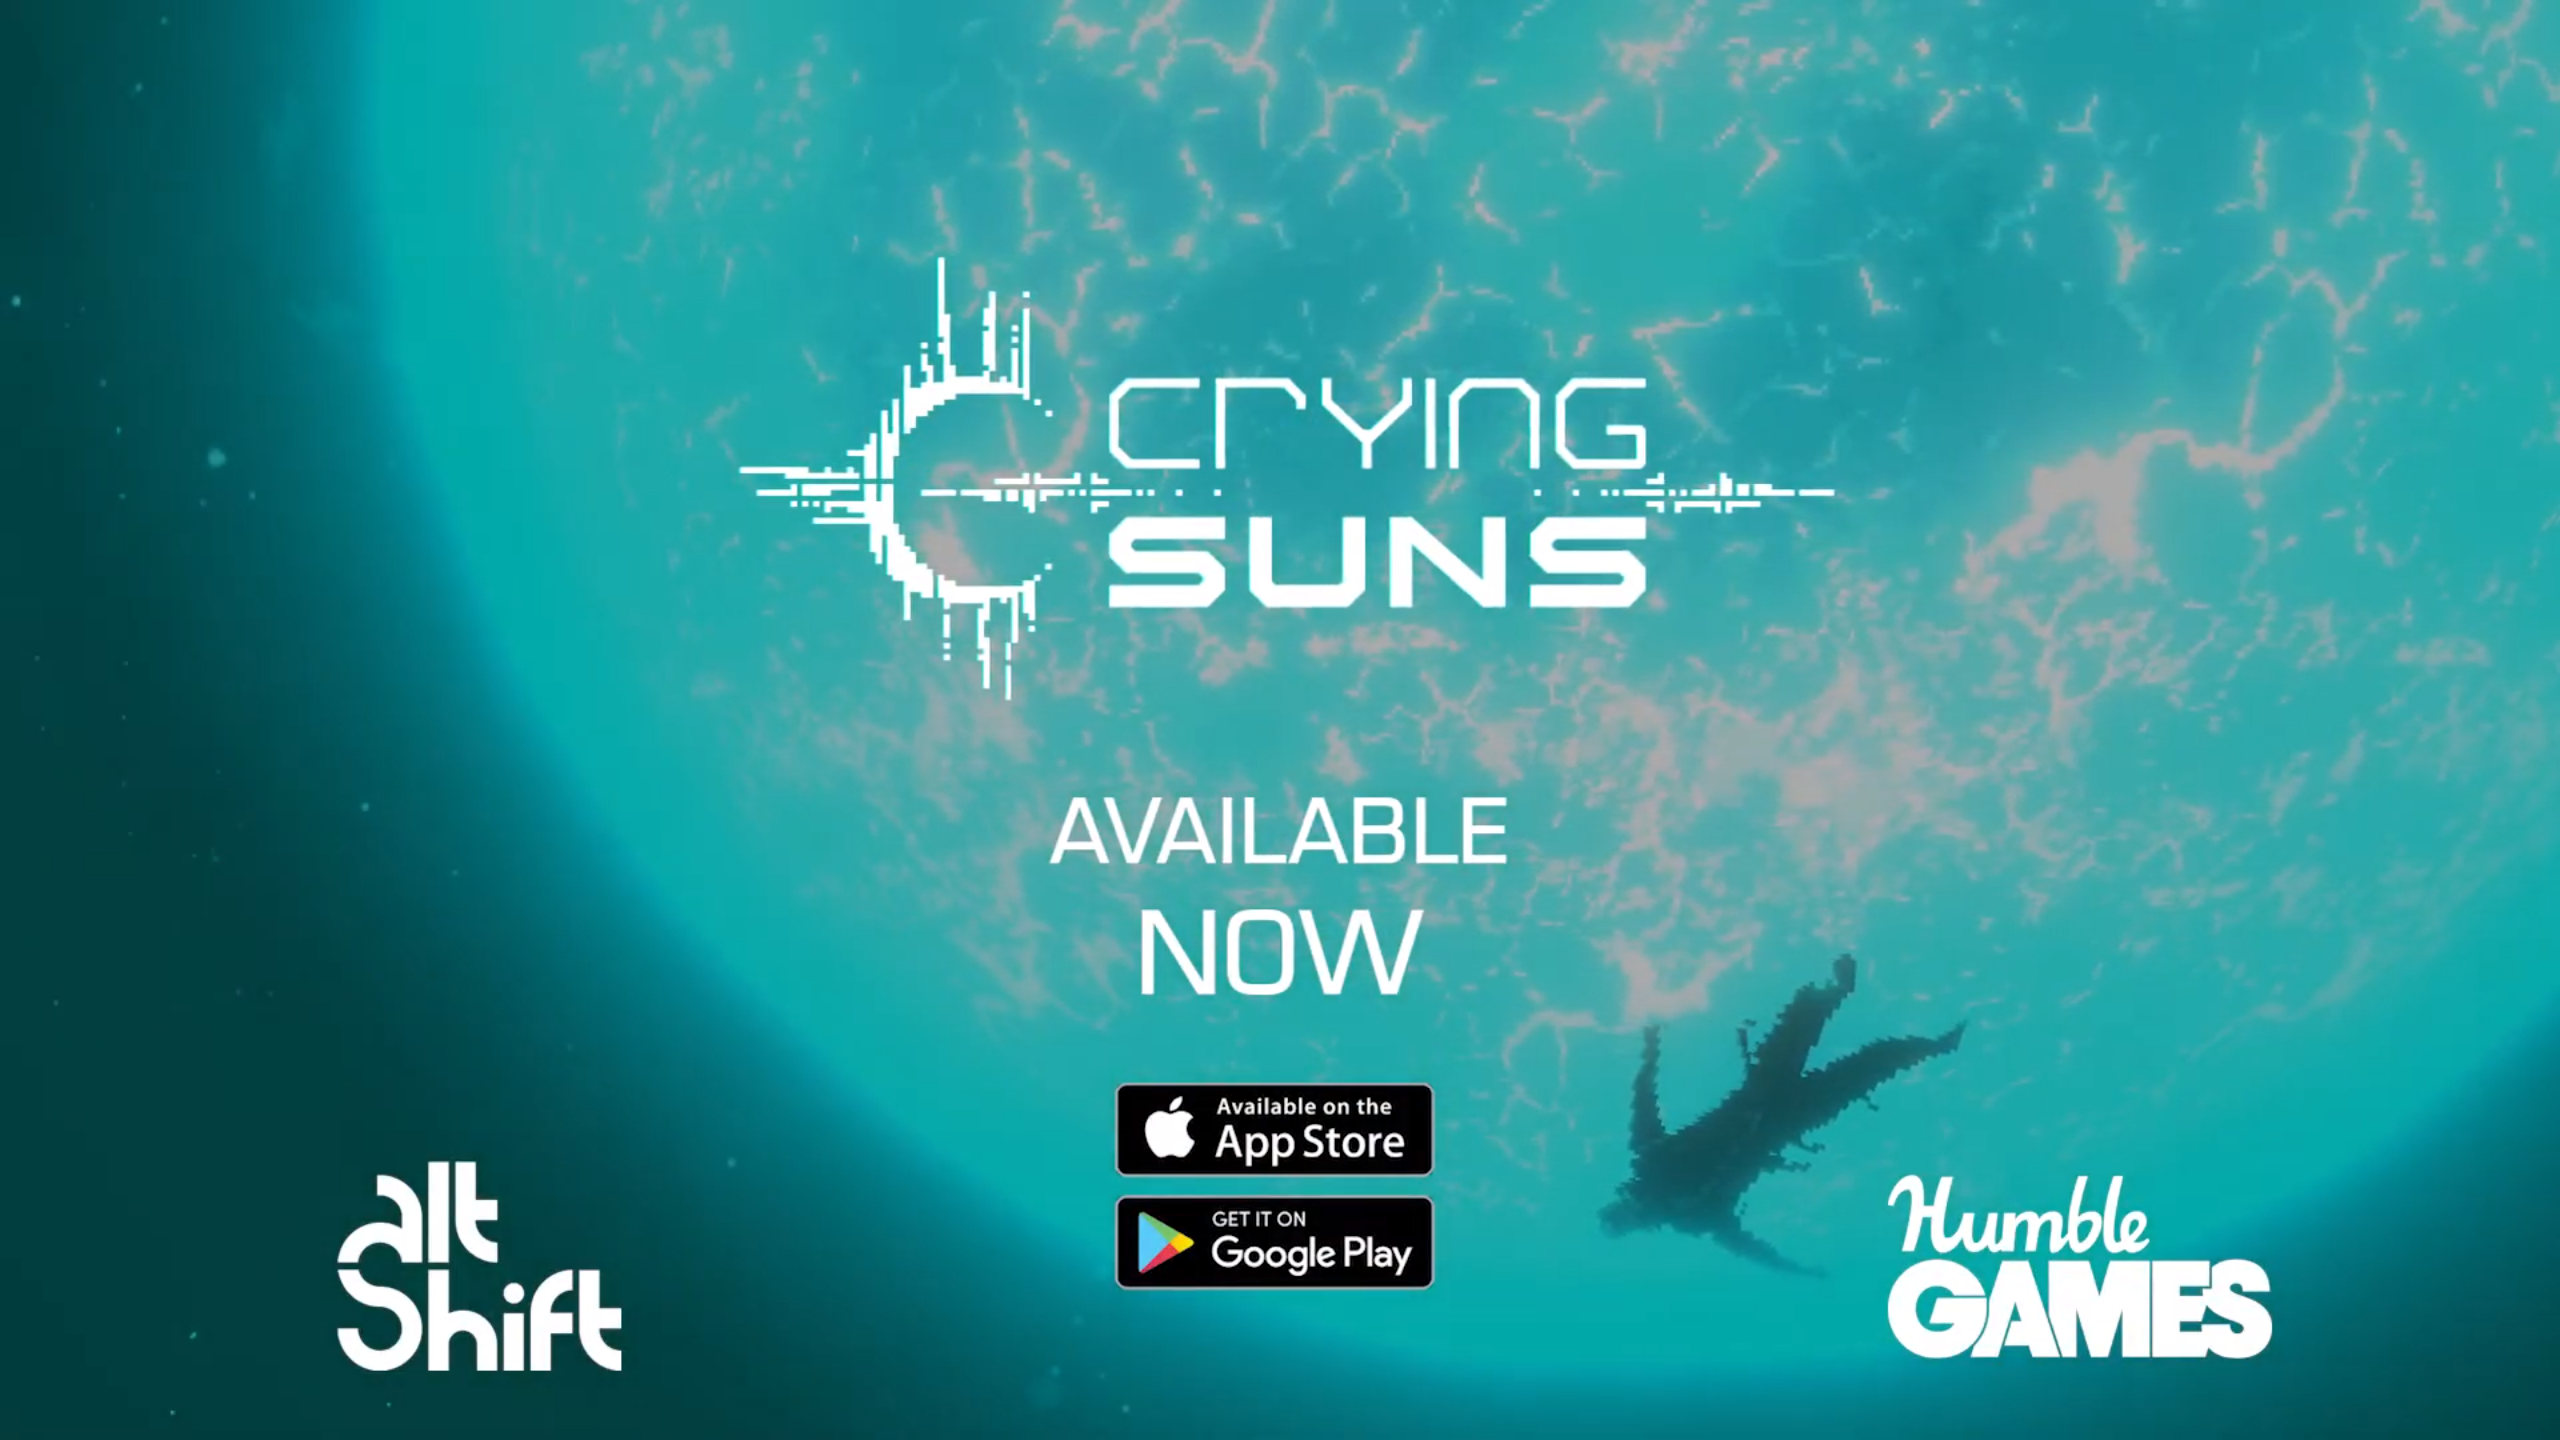 Crying suns Game Release on Android Devices